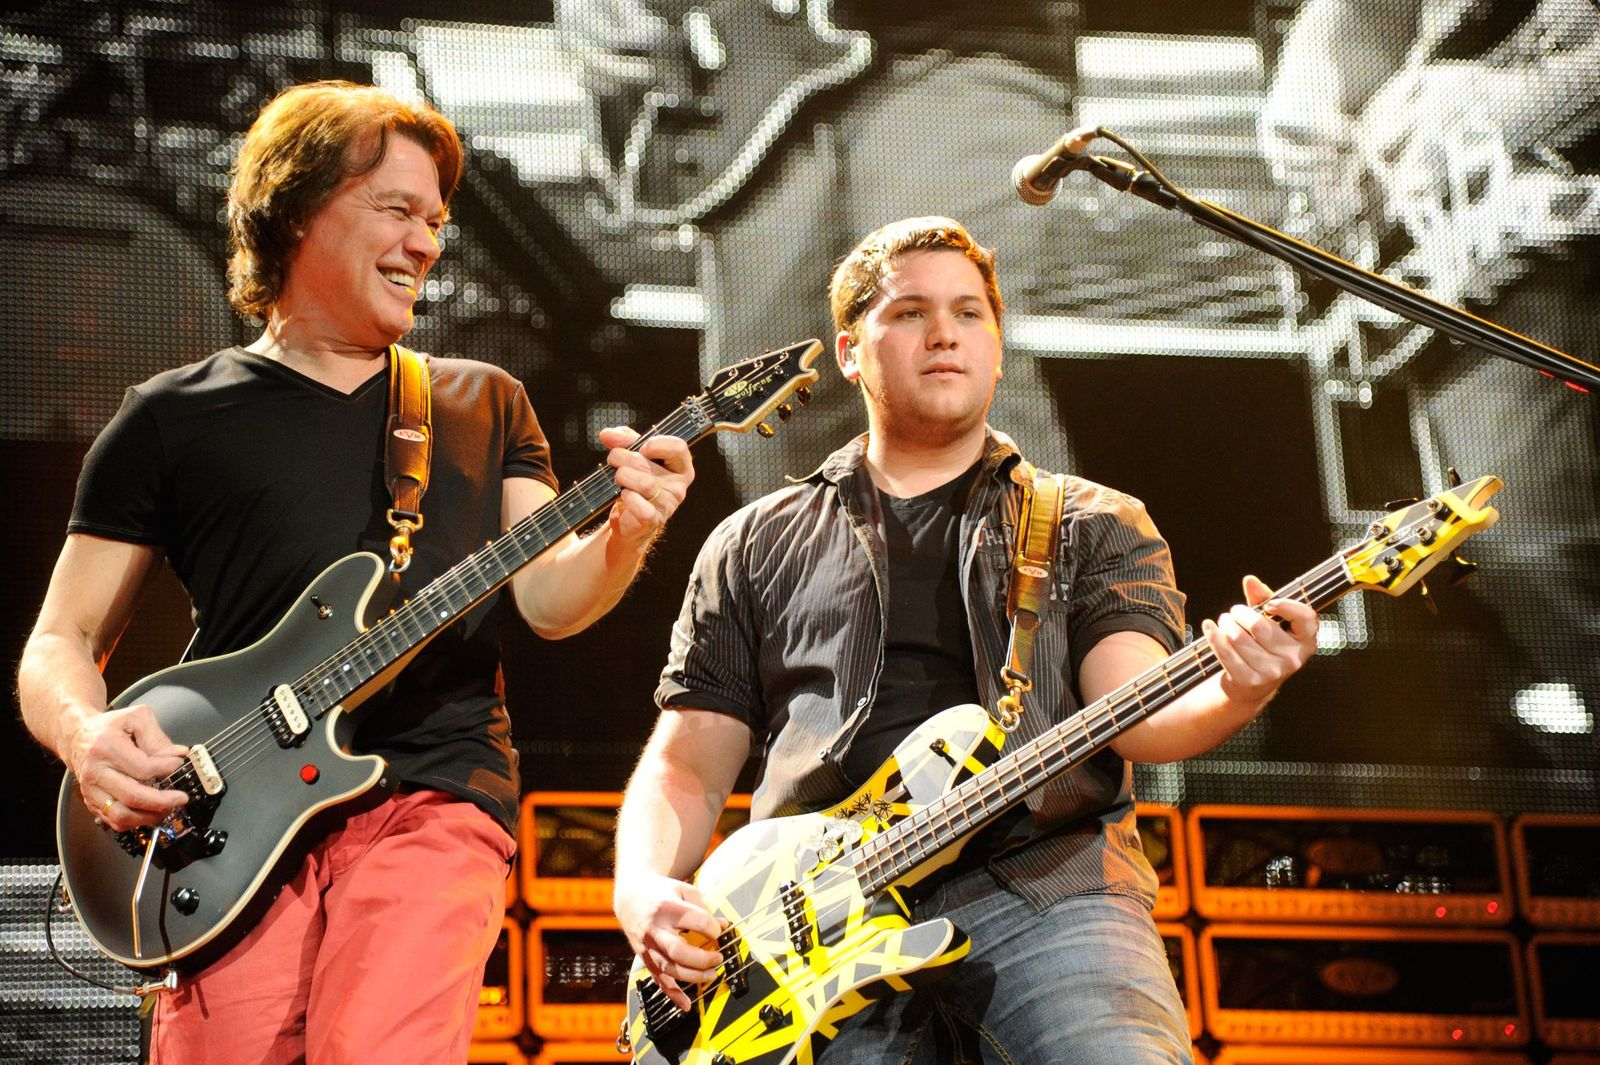 """Eddie Van Halen and Wolfgang Van Halen of Van Halen perform at """"A Different Kind of Truth"""" tour at Madison Square Garden on February 28, 2012 